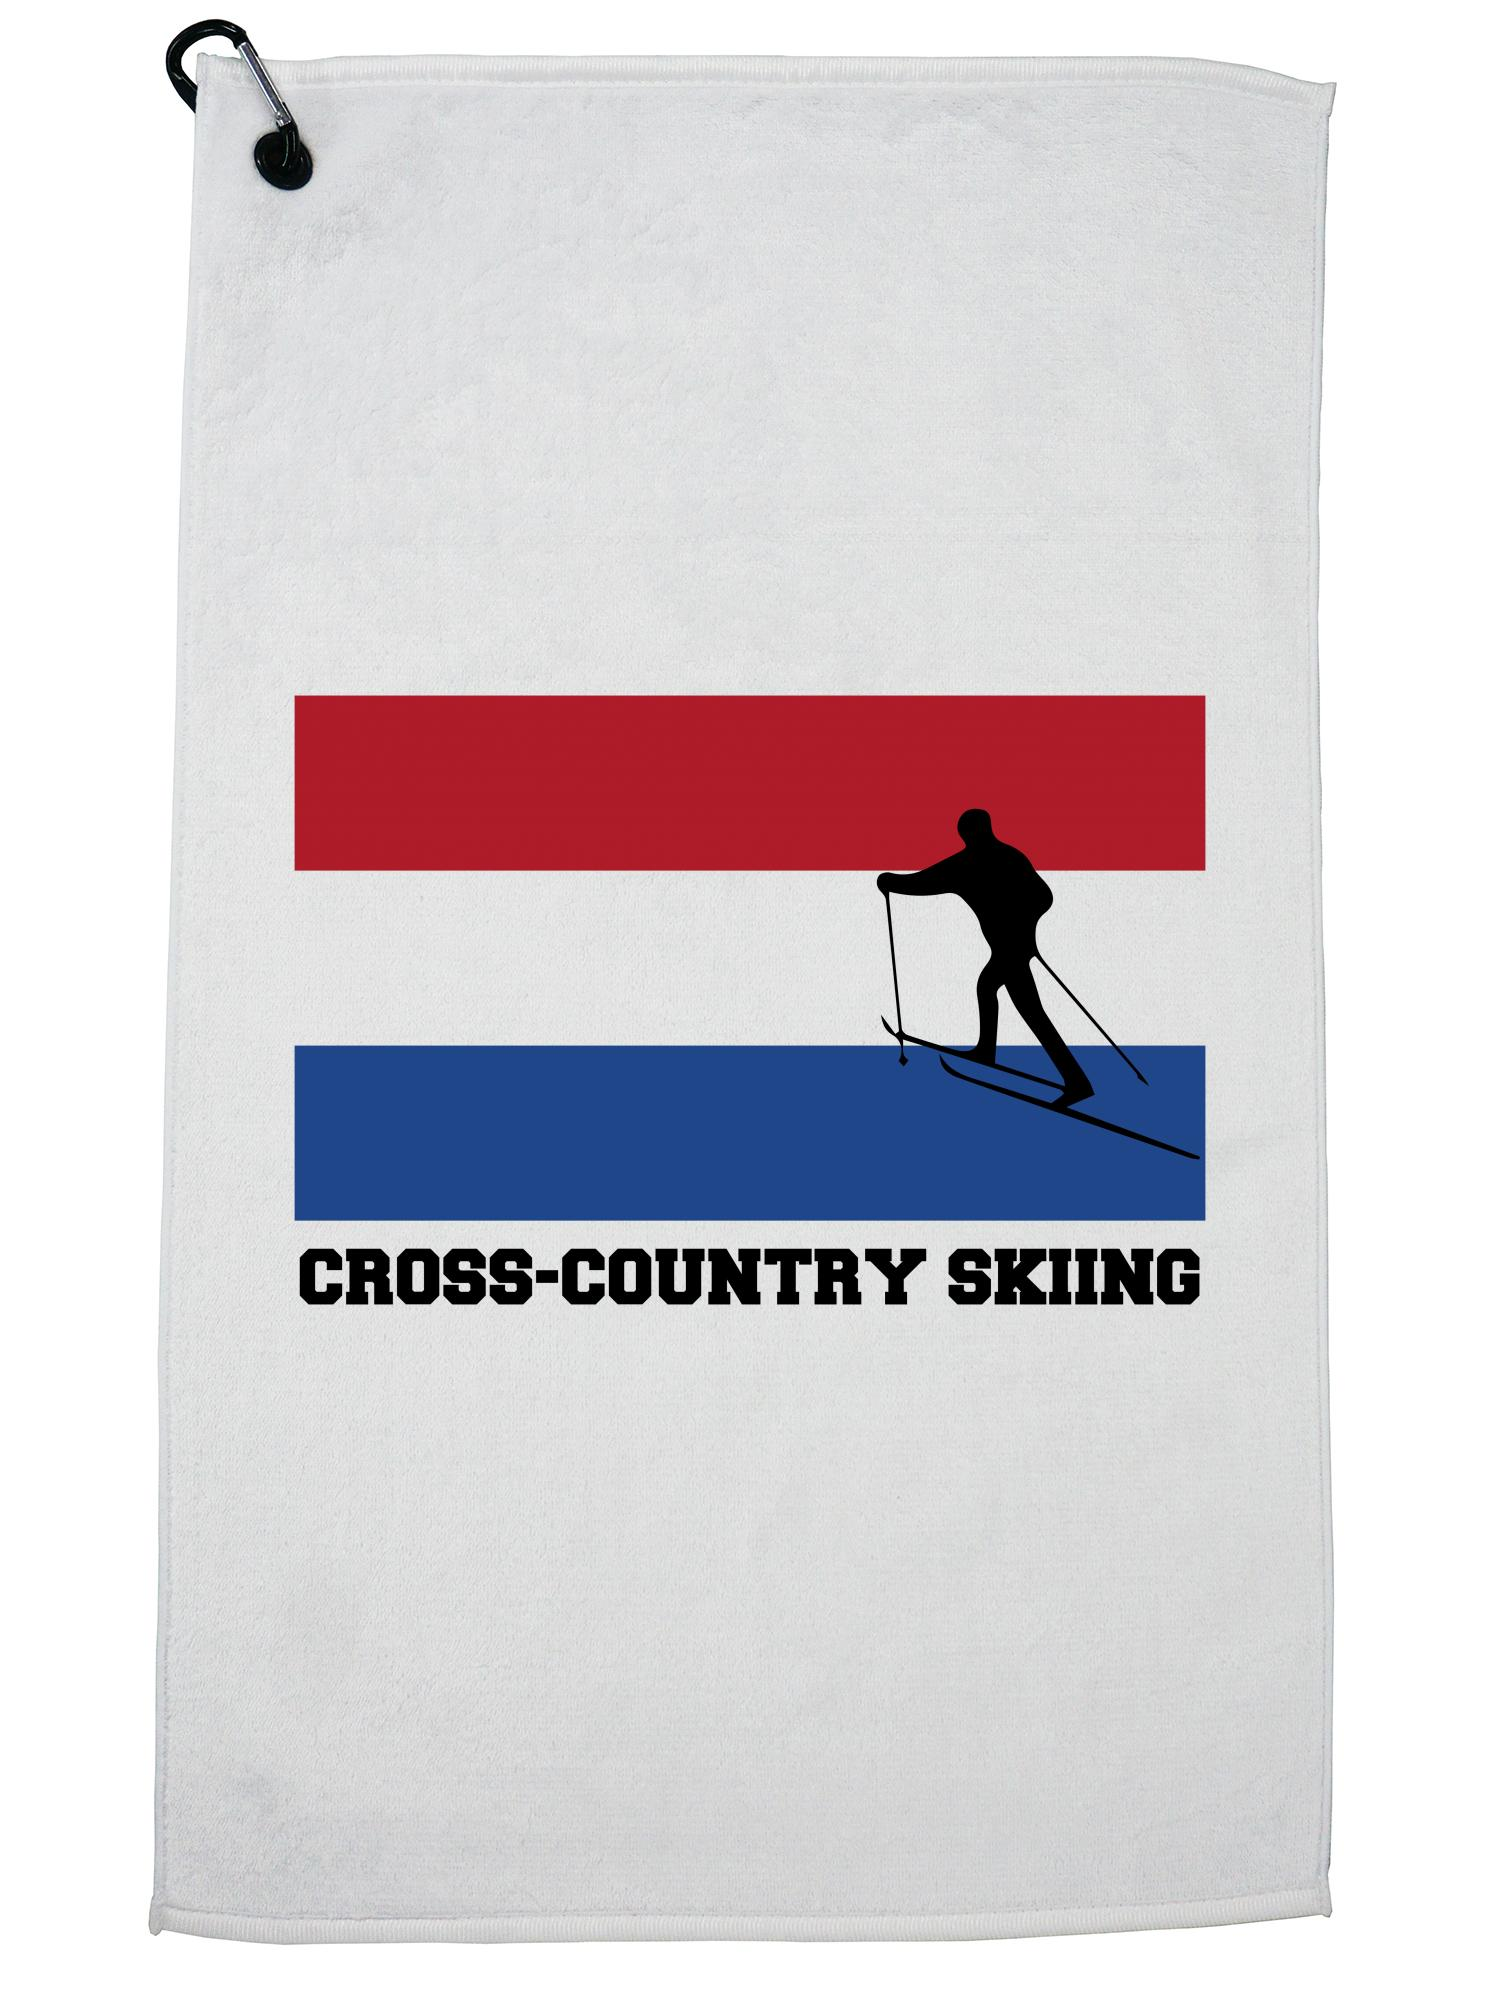 Netherlands Olympic Cross-Country Skiing Flag Silhouette Golf Towel with Carabiner Clip by Hollywood Thread